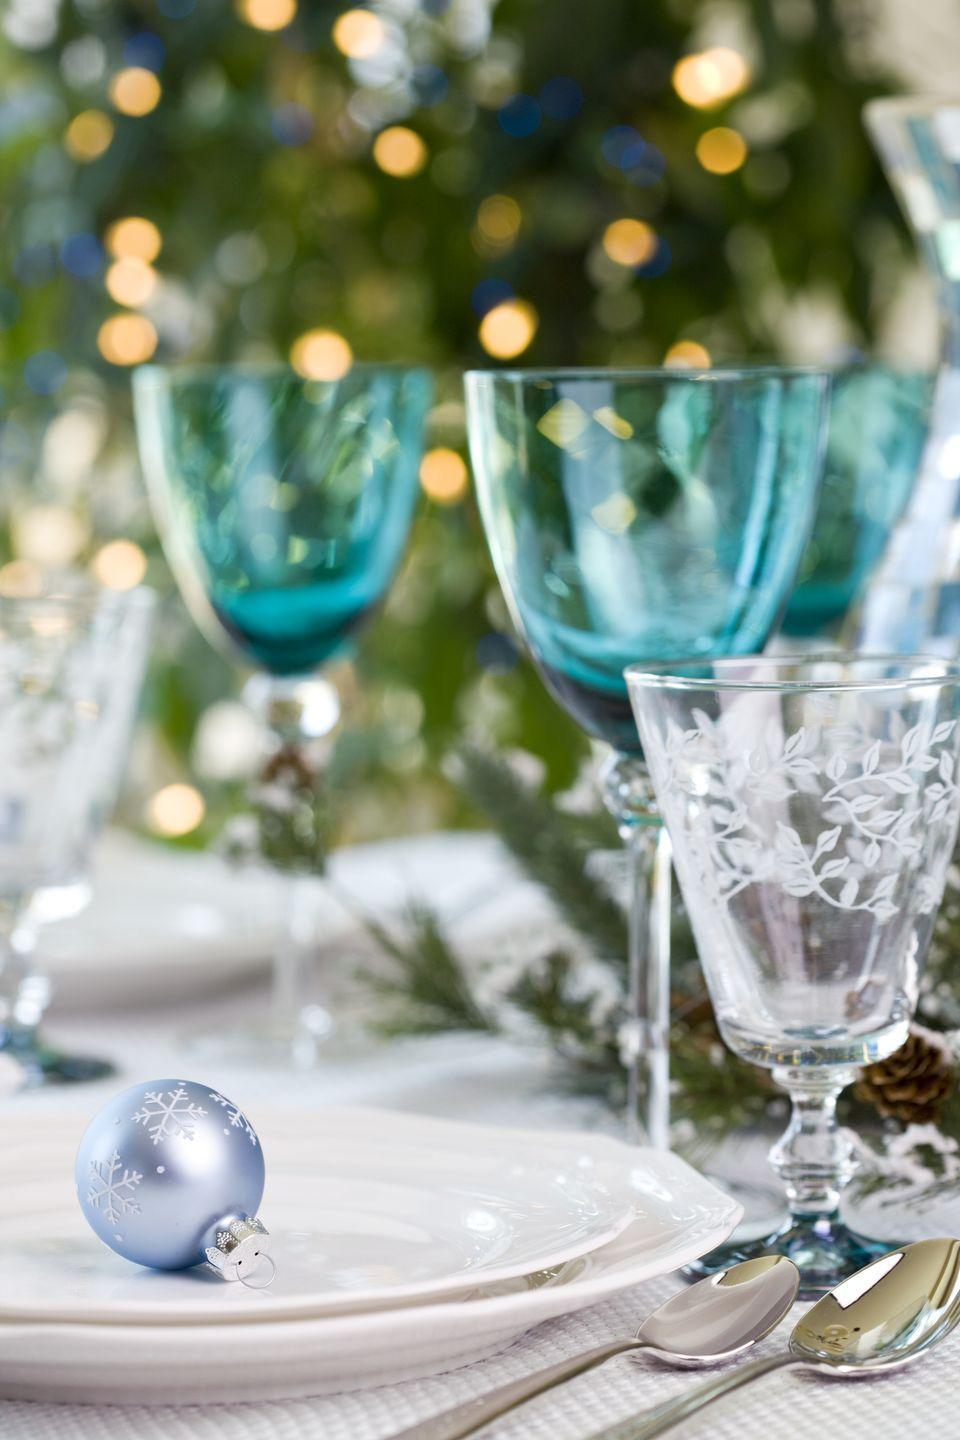 """<p>Transform your NYE party into an enchanting winter wonderland full of gorgeous <a href=""""https://www.amazon.com/Christmas-Snowflake-Hanging-Snowflakes-Decorations/dp/B07VRPKL9X/ref=sr_1_9?keywords=snowflake+decorations&qid=1575396790&sr=8-9&tag=syn-yahoo-20&ascsubtag=%5Bartid%7C10055.g.30105731%5Bsrc%7Cyahoo-us"""" rel=""""nofollow noopener"""" target=""""_blank"""" data-ylk=""""slk:snowflake decorations"""" class=""""link rapid-noclick-resp"""">snowflake decorations</a>, <a href=""""https://www.amazon.com/CraftMore-Smokey-Pine-Garland-Christmas/dp/B01LQQQENS/ref=sr_1_3?keywords=winter+wonderland+decor&qid=1575397040&sr=8-3&tag=syn-yahoo-20&ascsubtag=%5Bartid%7C10055.g.30105731%5Bsrc%7Cyahoo-us"""" rel=""""nofollow noopener"""" target=""""_blank"""" data-ylk=""""slk:pine garlands"""" class=""""link rapid-noclick-resp"""">pine garlands</a> and a <a href=""""https://www.amazon.com/B-COOL-Square-Tablecloth-Thanksgiving-Sparkle/dp/B01LYBWV2T/ref=sr_1_4?keywords=winter+wonderland+decor&qid=1575397014&sr=8-4&tag=syn-yahoo-20&ascsubtag=%5Bartid%7C10055.g.30105731%5Bsrc%7Cyahoo-us"""" rel=""""nofollow noopener"""" target=""""_blank"""" data-ylk=""""slk:silver sequin tablecloth"""" class=""""link rapid-noclick-resp"""">silver sequin tablecloth</a> — and don't forget the cozy hot chocolate bar (mini marshmallows are a must, of course).</p>"""